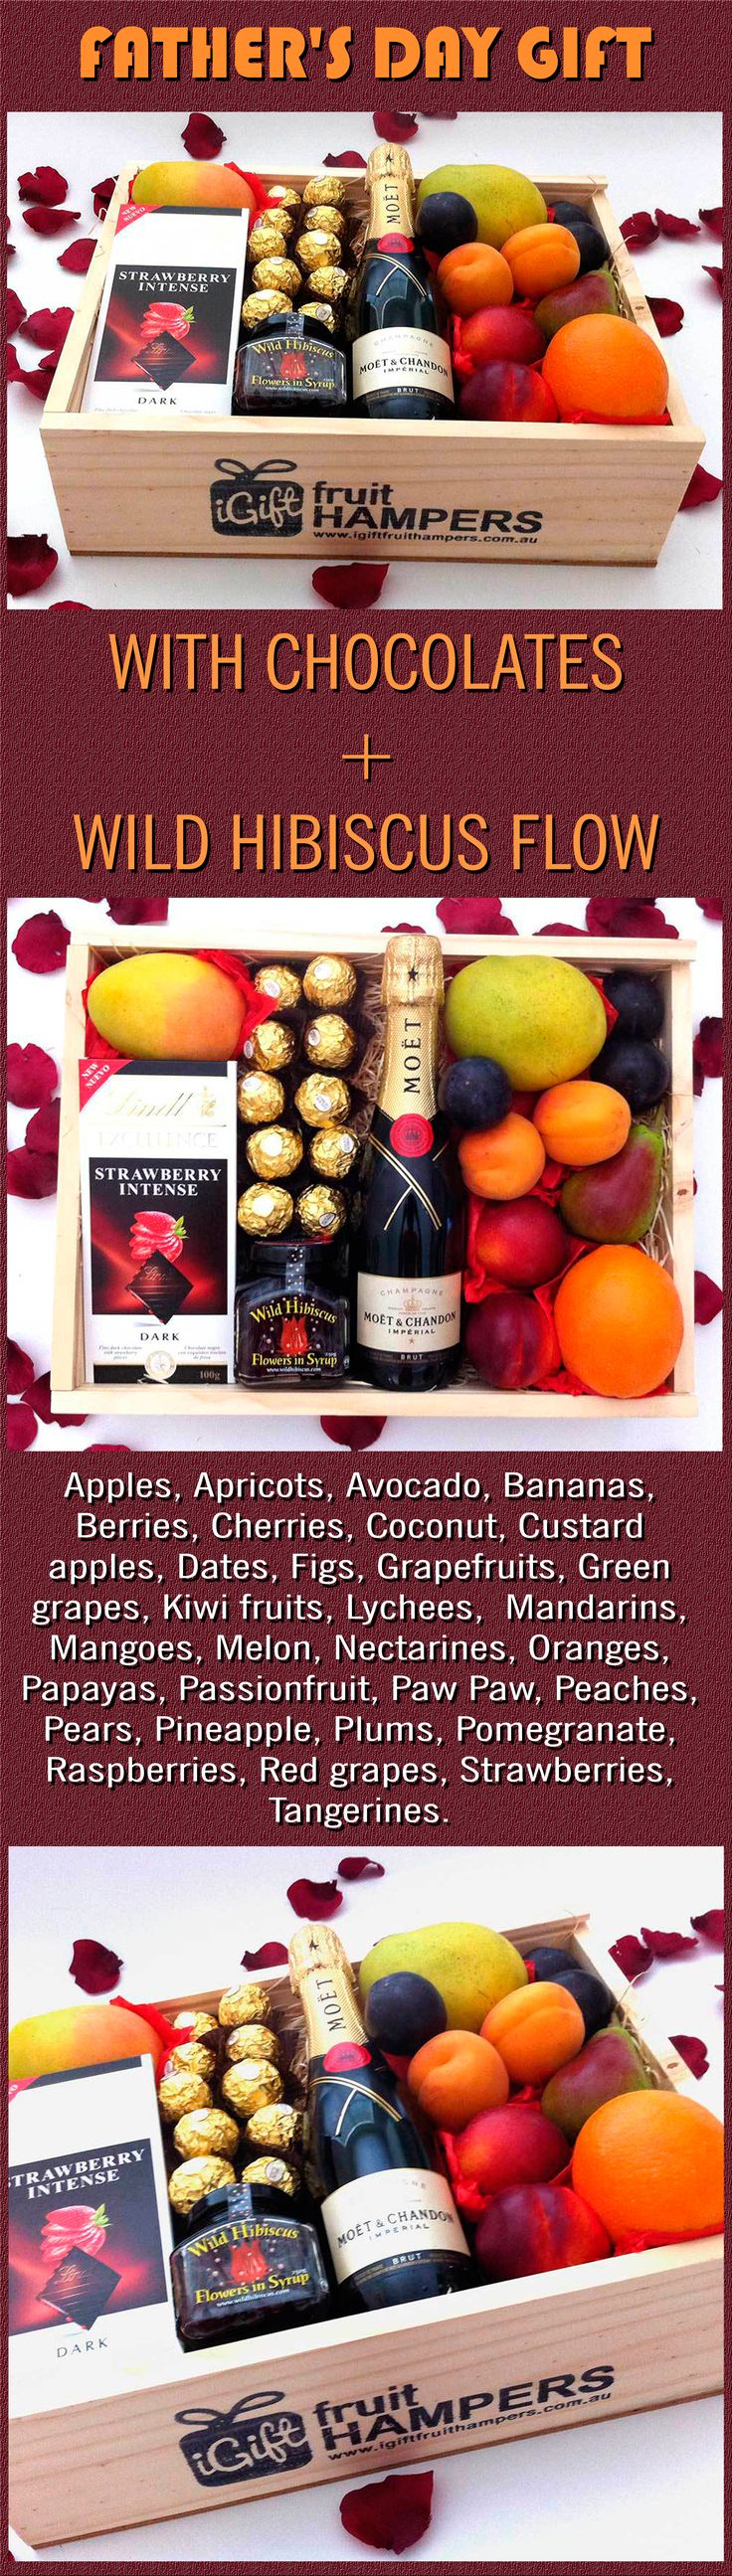 MOET CHANDON PICCOLO 200ML RED GIFT BOX + WILD HIBISCUS FLOWERS + CHOCOLATES  What a beautiful red gift box filled with gourmet delights, this is the perfect gift to send to your Father to wish him a Happy Father's Day. free shipping Australia.  #fathersday #getwell #gifts #occasions